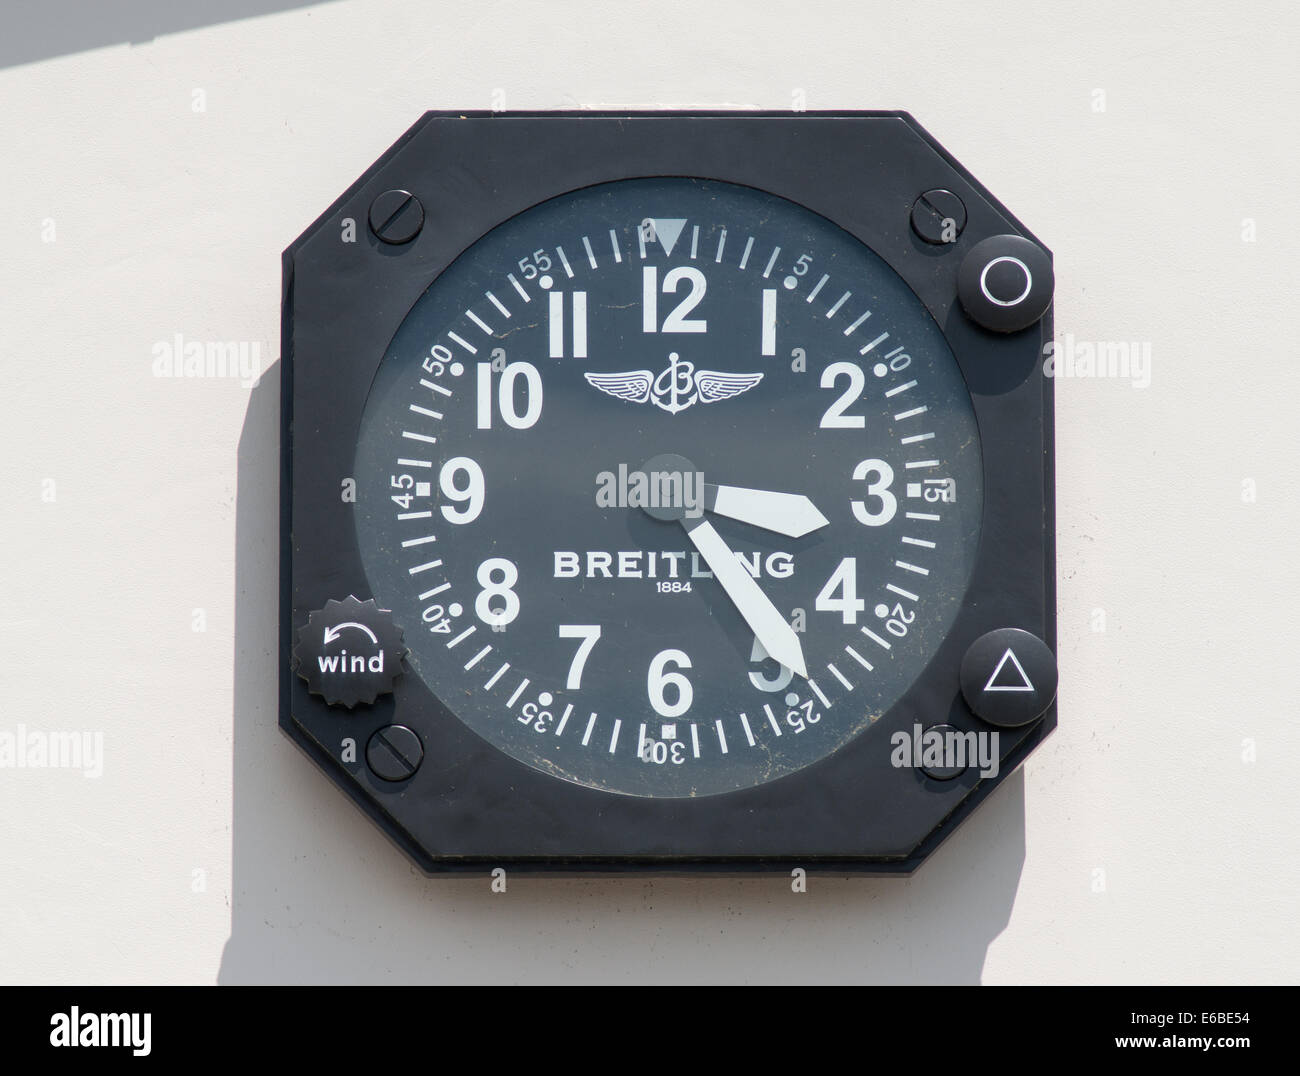 Breitling Wall Clock Stock Photos Breitling Wall Clock Stock